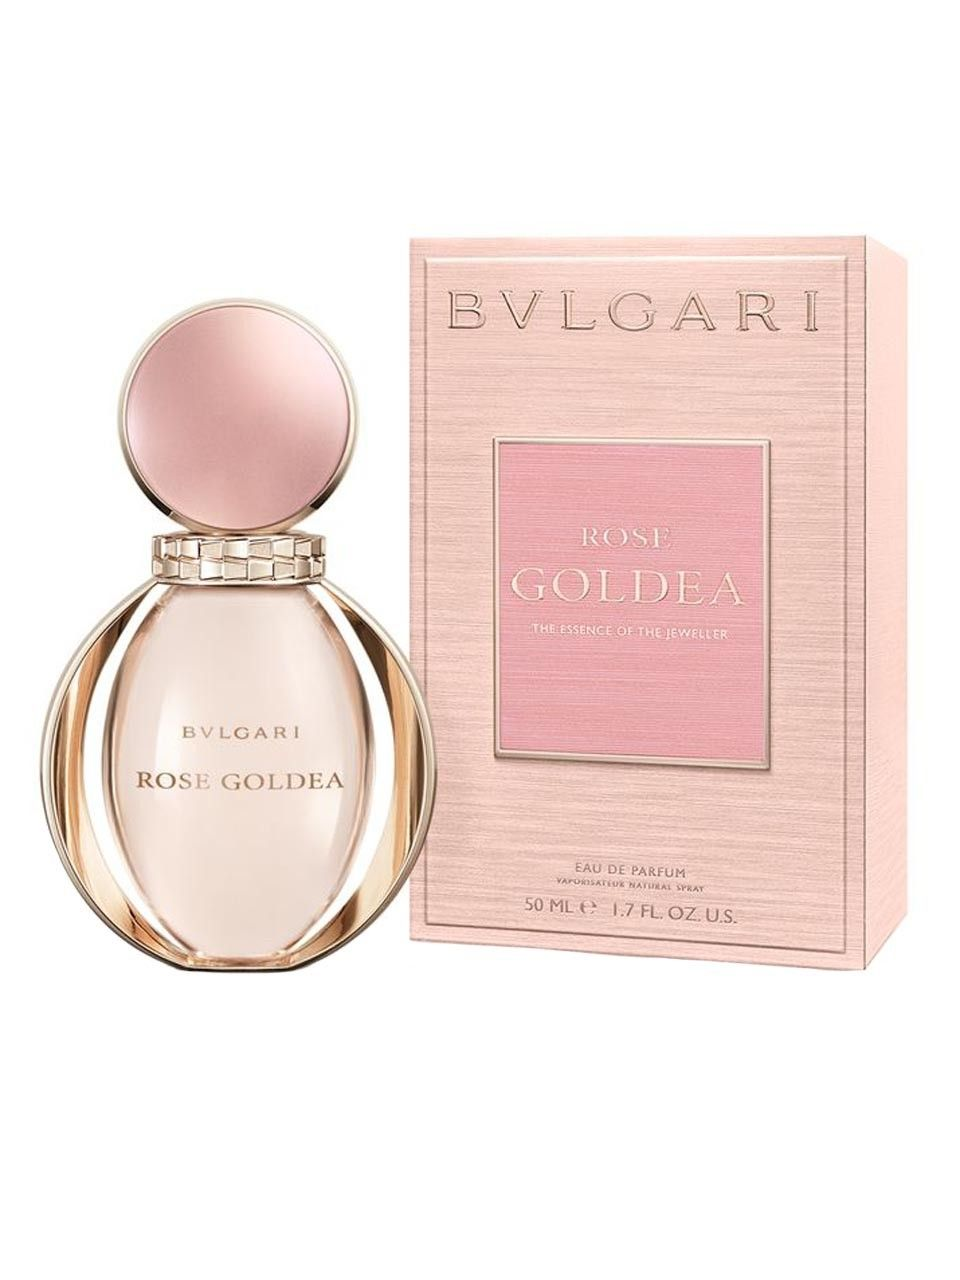 Bulgari Rose Goldea 2016 Fragrances Bvlgari Rose